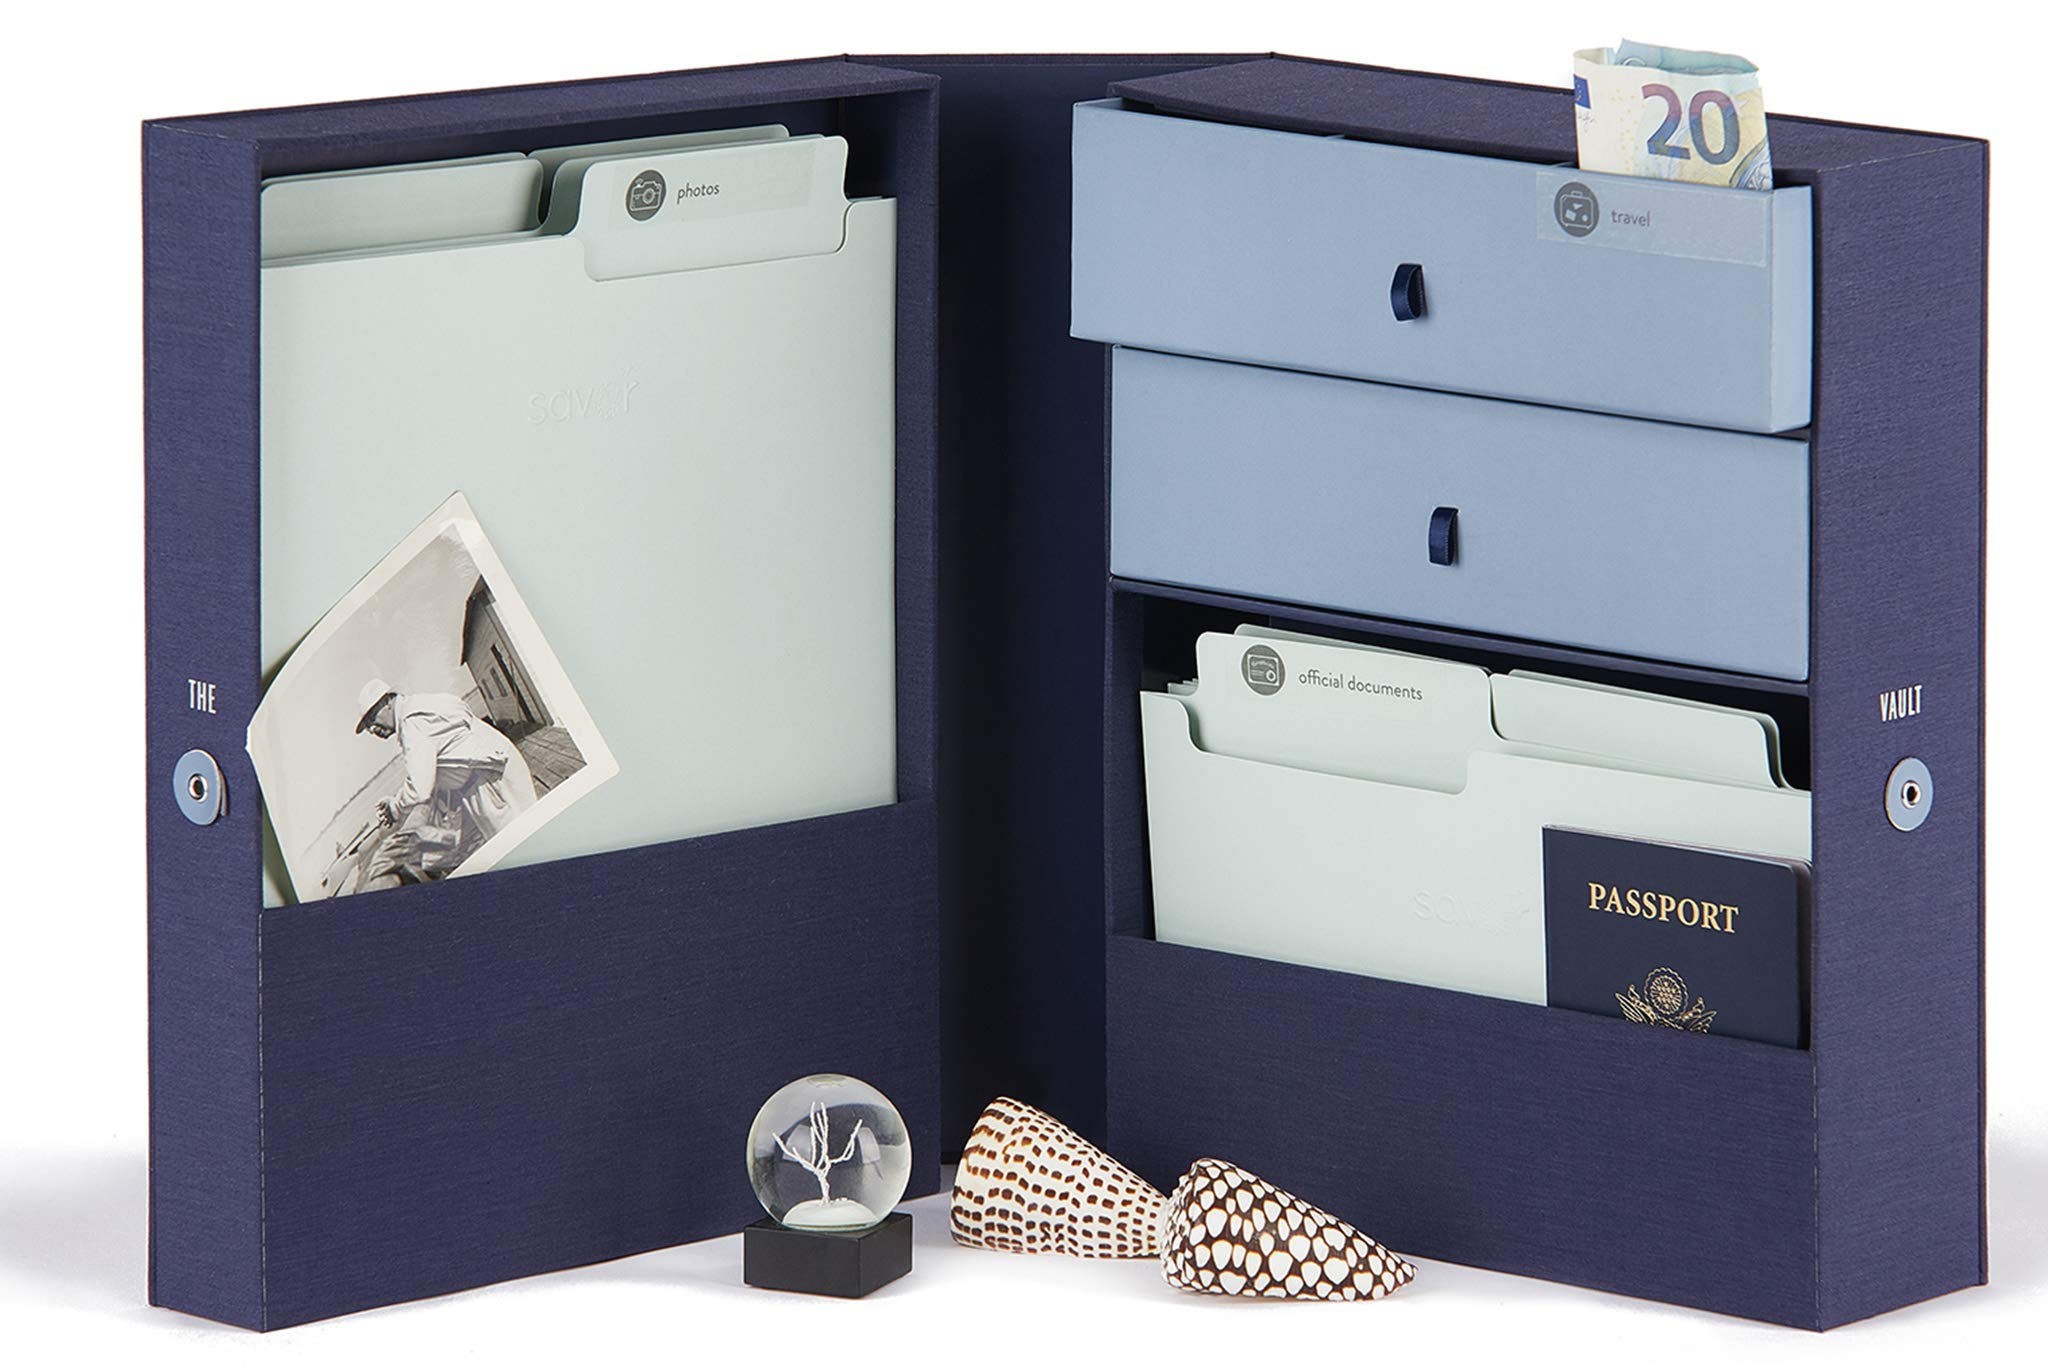 Savor All-in-One Fabric Desk Organizer Storage System-The Vault-Filing system holds Important Documents and Objects including passports, money, keepsakes, letters, collections, office supplies, photos by Savor